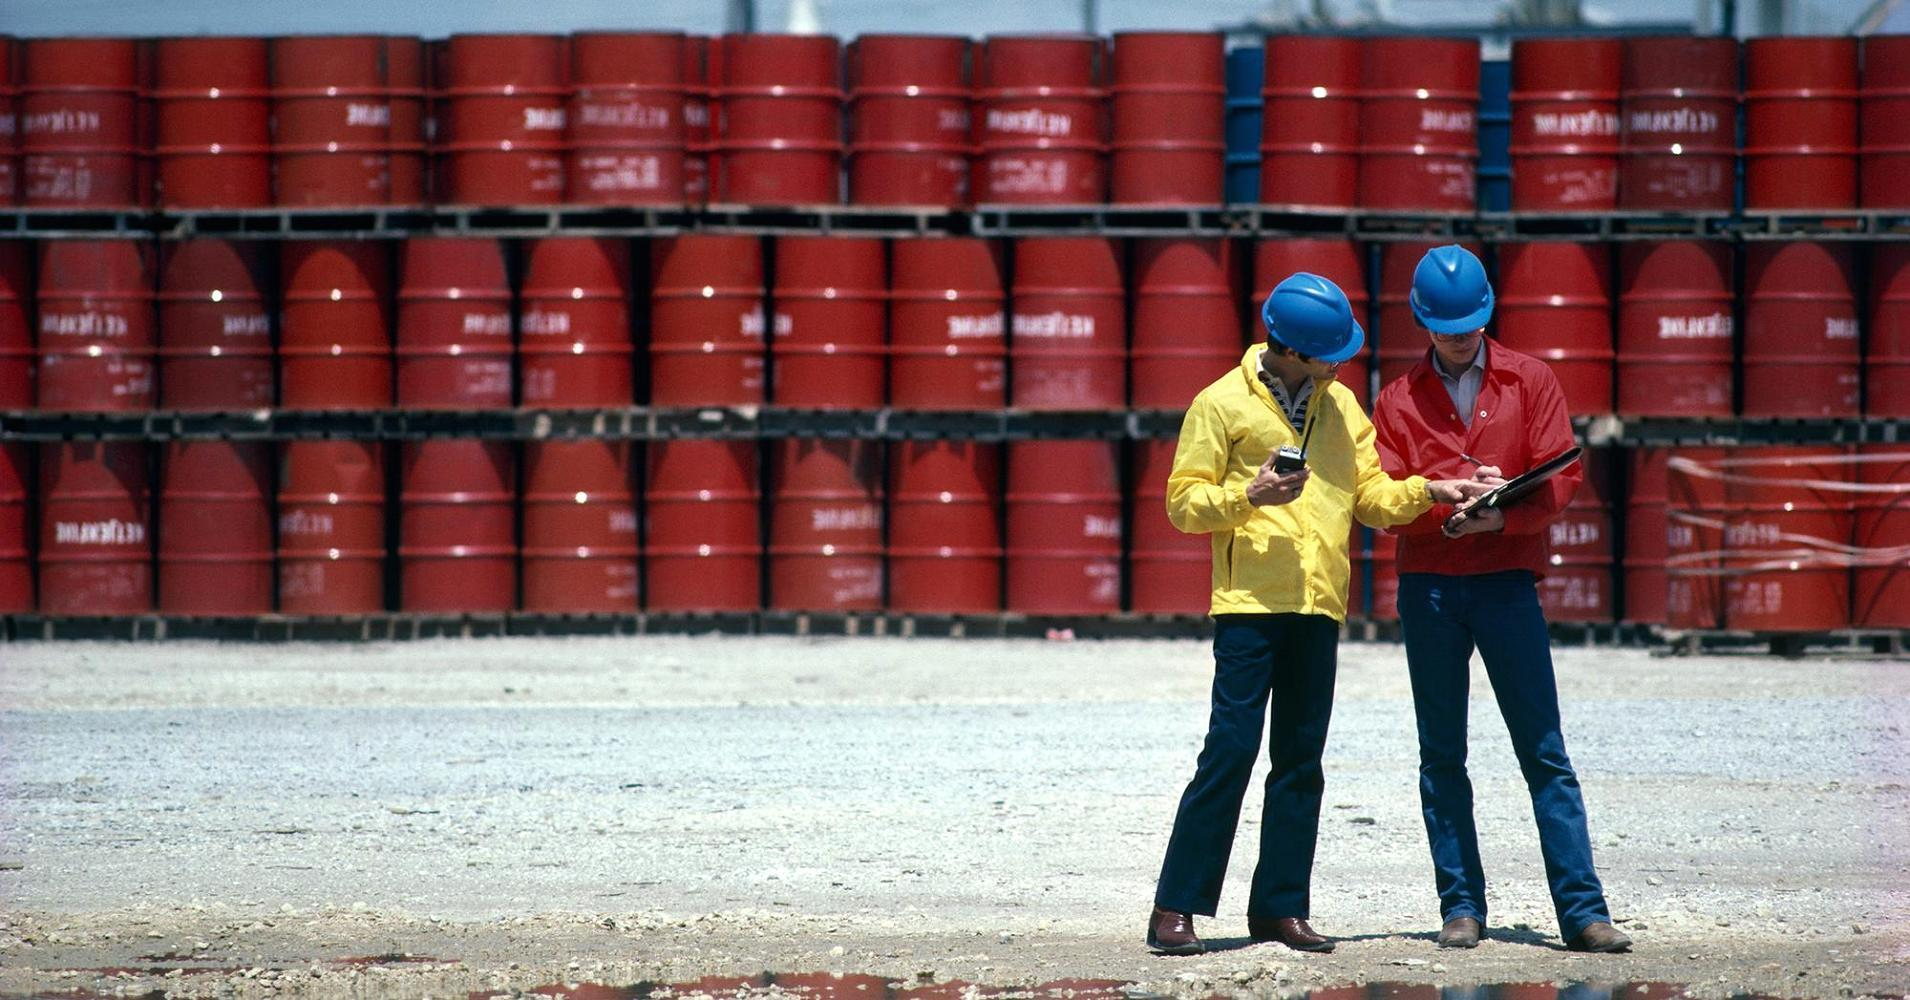 You won't see $70 oil until 2018: Morgan Stanley